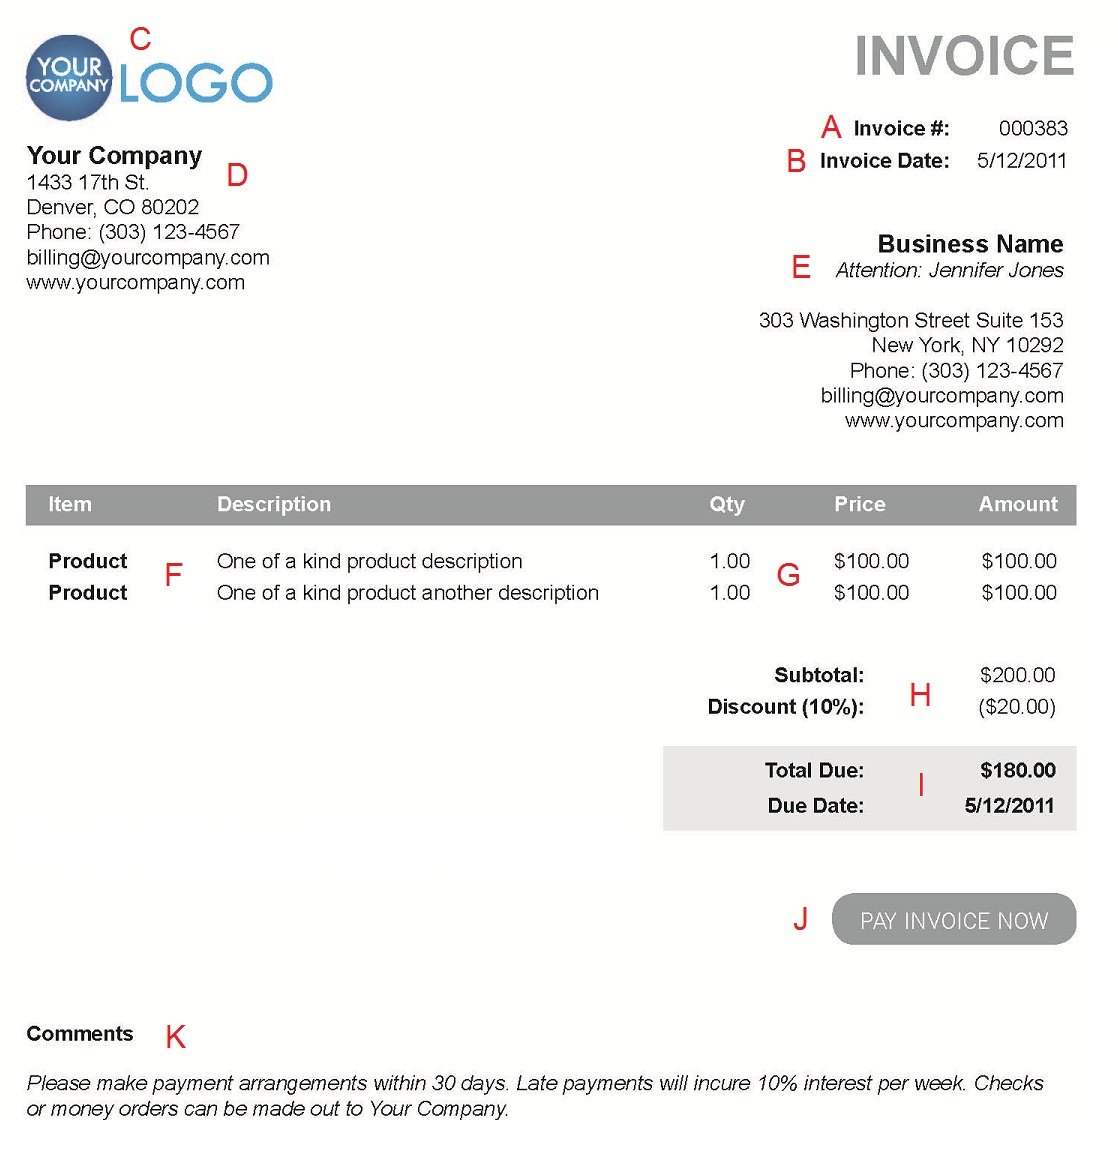 Usdgus  Surprising The  Different Sections Of An Electronic Payment Invoice With Interesting A  With Delightful Paperless Invoice Also Php Invoice In Addition Photography Invoices And Billing Invoice Template Pdf As Well As Hot Snakes Suicide Invoice Additionally Nch Software Express Invoice From Paysimplecom With Usdgus  Interesting The  Different Sections Of An Electronic Payment Invoice With Delightful A  And Surprising Paperless Invoice Also Php Invoice In Addition Photography Invoices From Paysimplecom